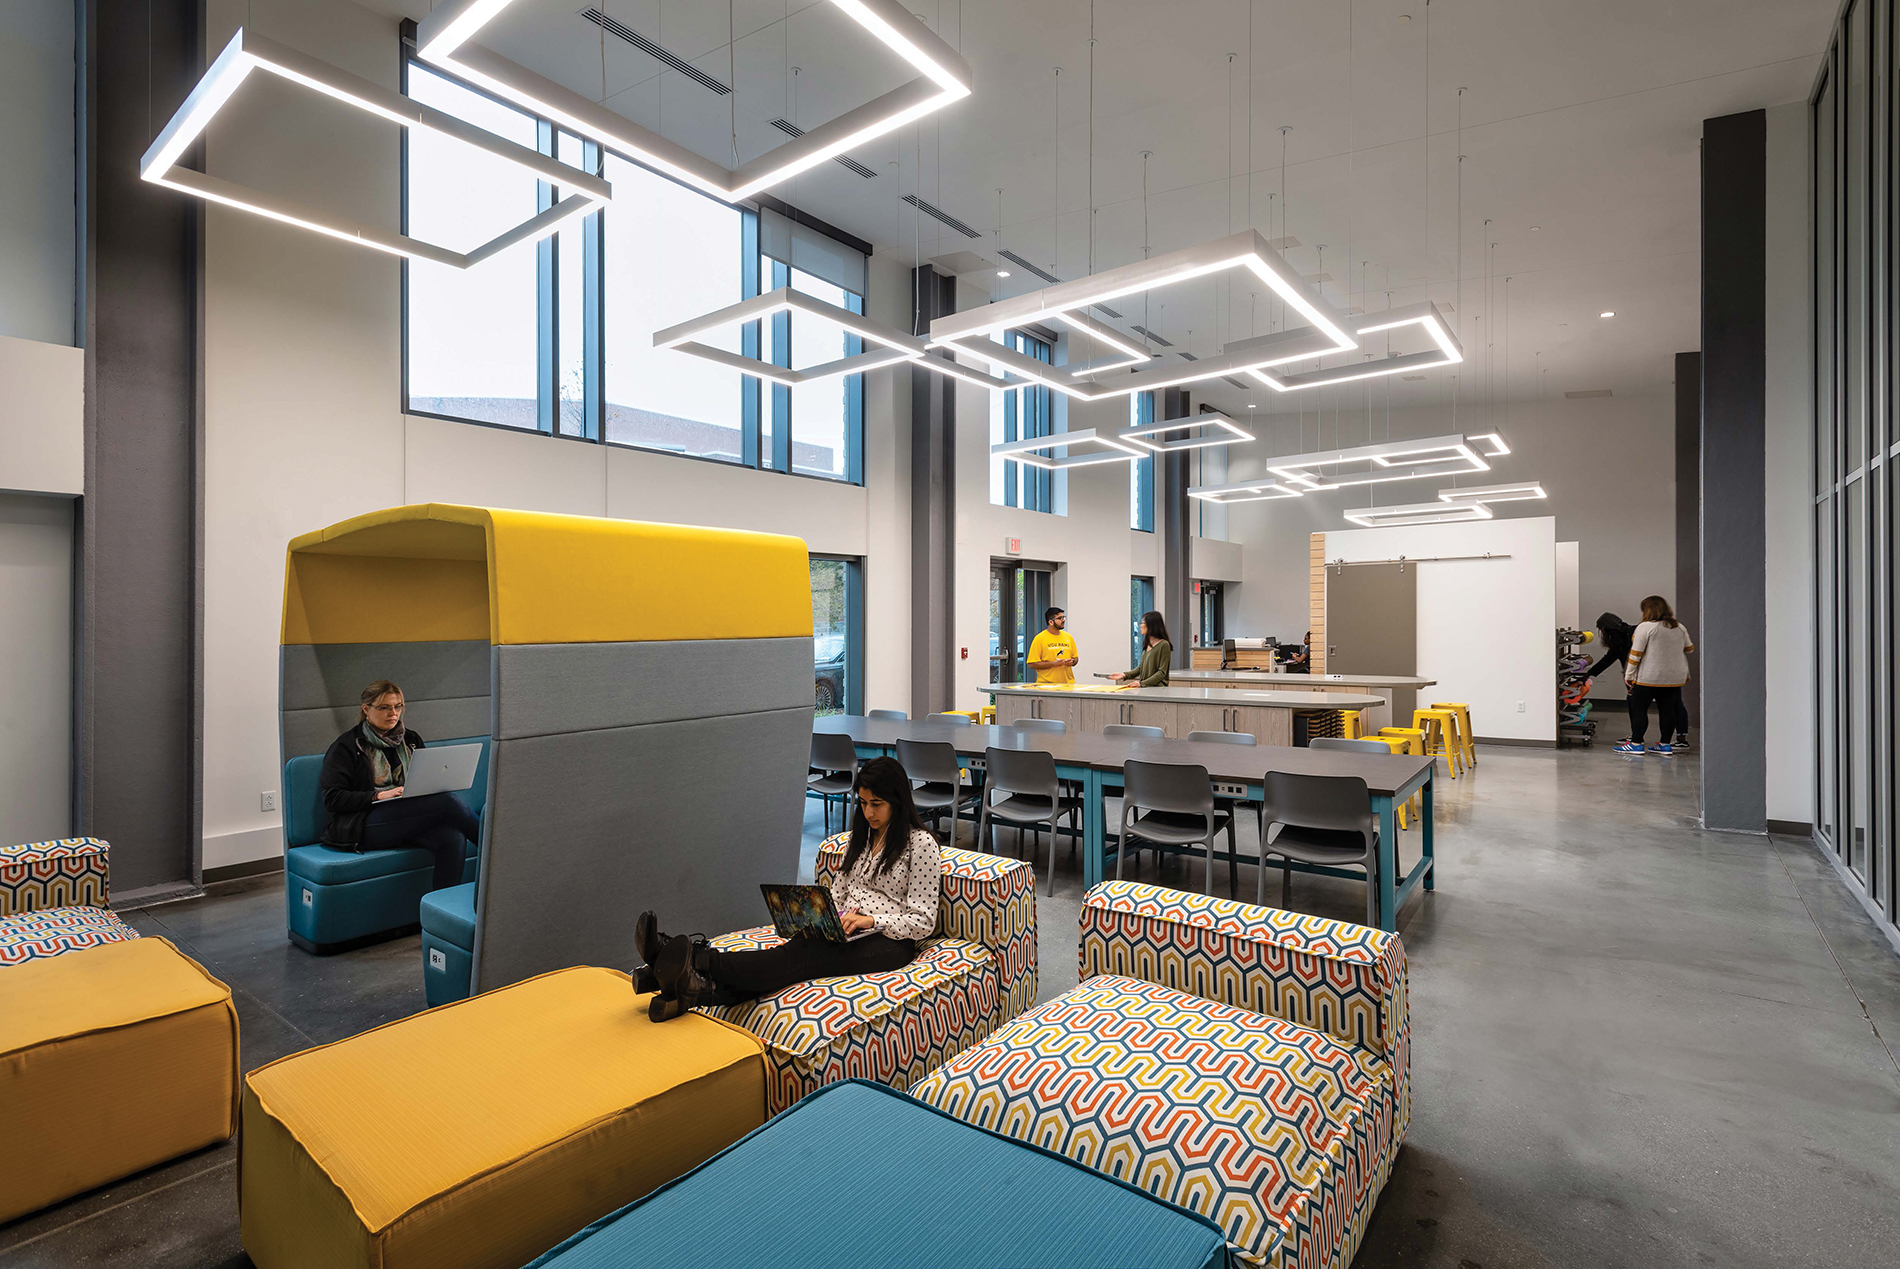 The building's natural light and colorful artwork make the GRC uniquely VCU. Image credit: Chewning + Wilmer